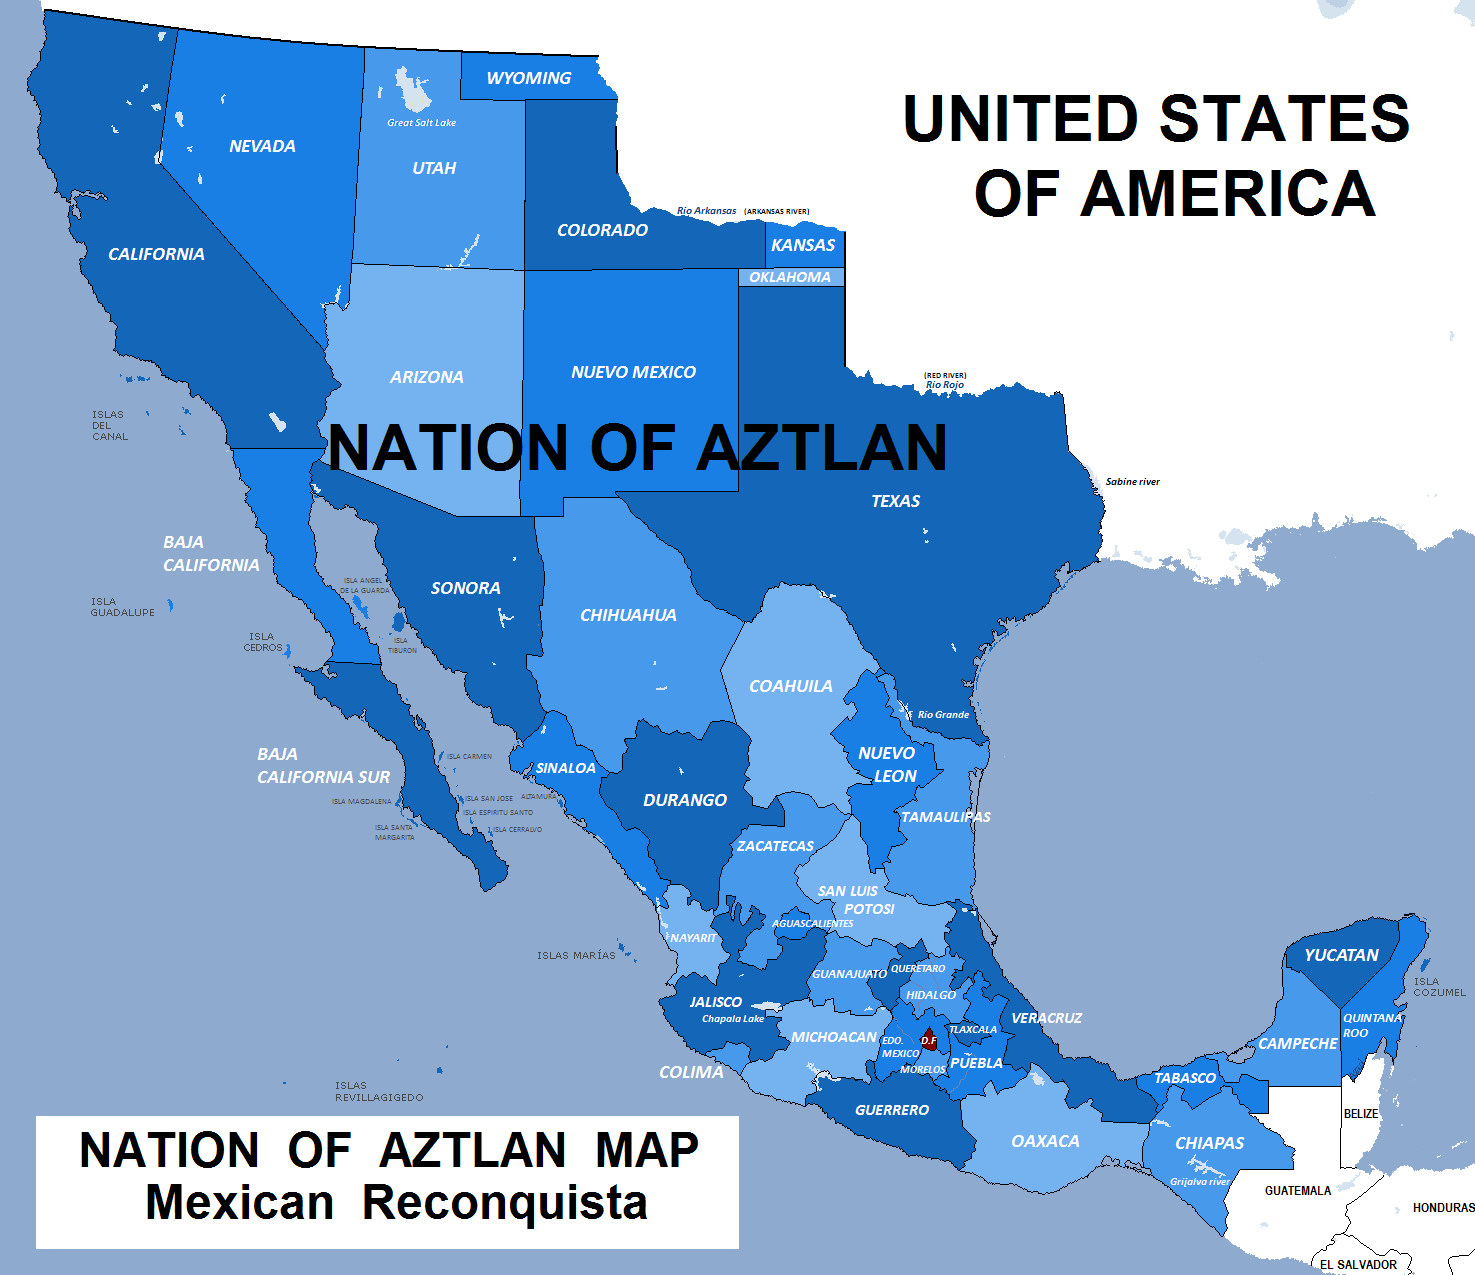 Many (LA) United States  city photos : ... United States for Mexico. They call that region Nation of Aztlán